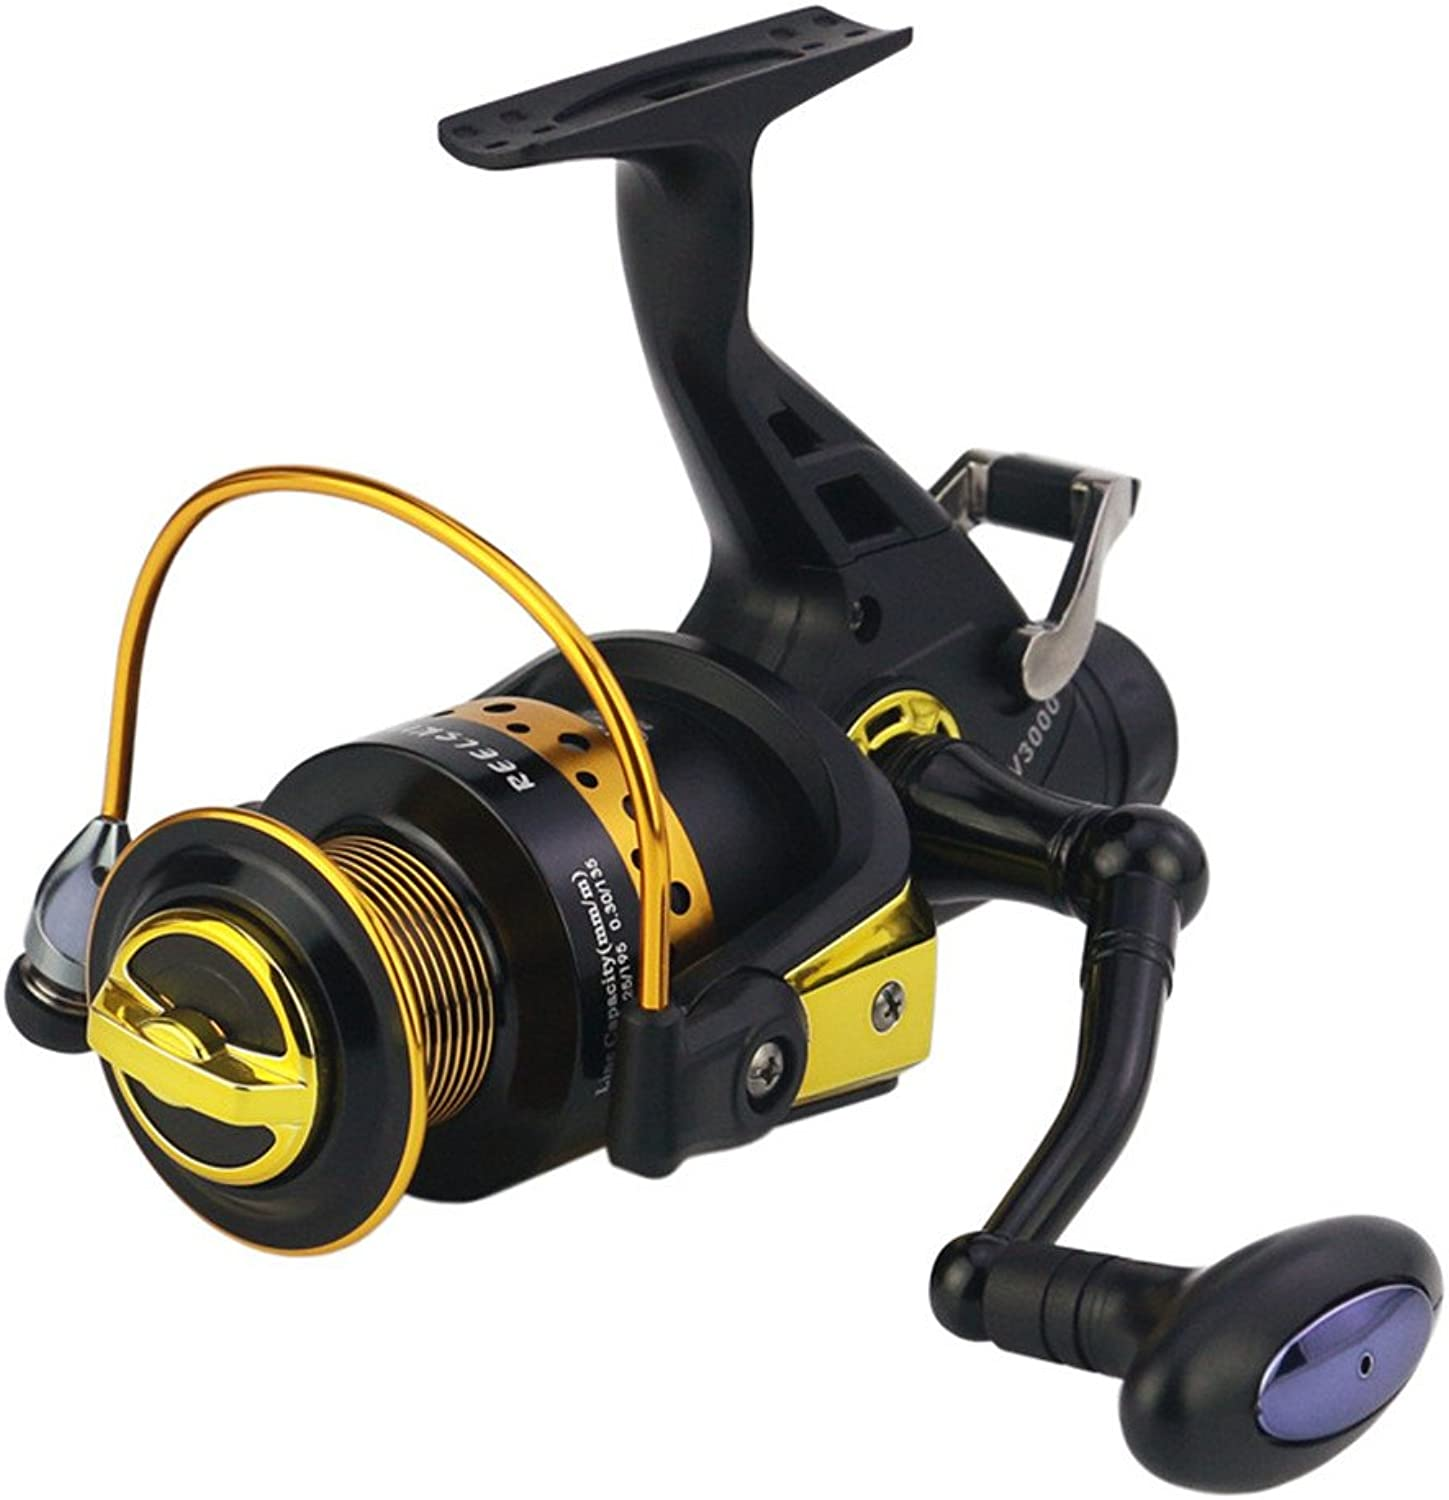 Fishing Reel Spinning Fishing Reel 13+1 Bearings Left Right Interchangeable Handle for Fishing with Double Drag Brake System for Bait Fishing Action (Size   3000)